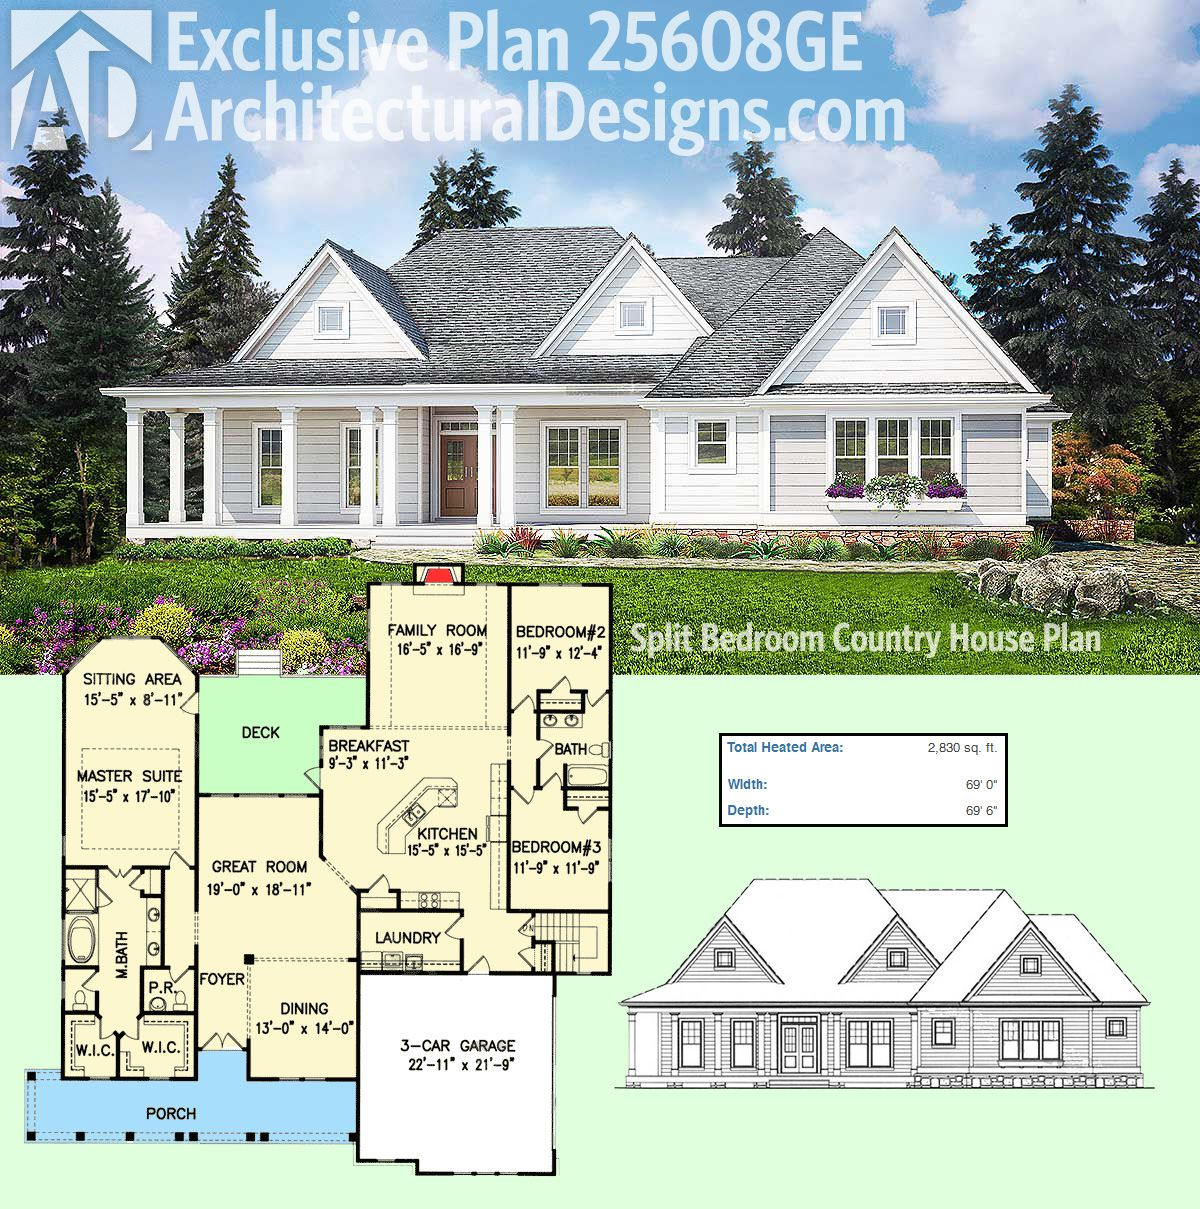 Plan 25608GE: Split Bedroom Country House Plan | House ...